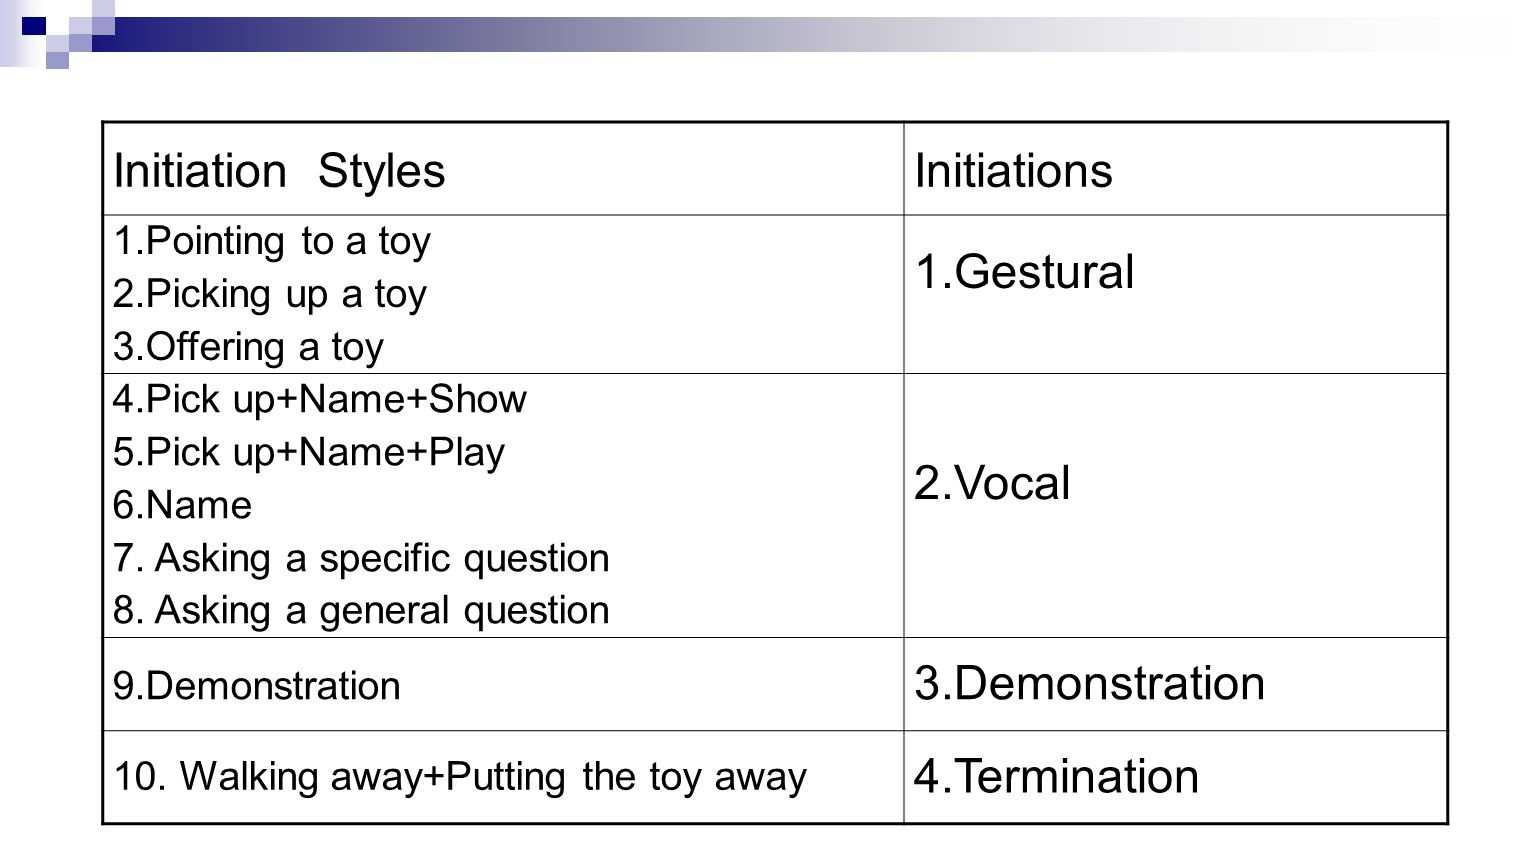 Initiation StylesInitiations 1.Pointing to a toy 2.Picking up a toy 3.Offering a toy 1.Gestural 4.Pick up+Name+Show 5.Pick up+Name+Play 6.Name 7.